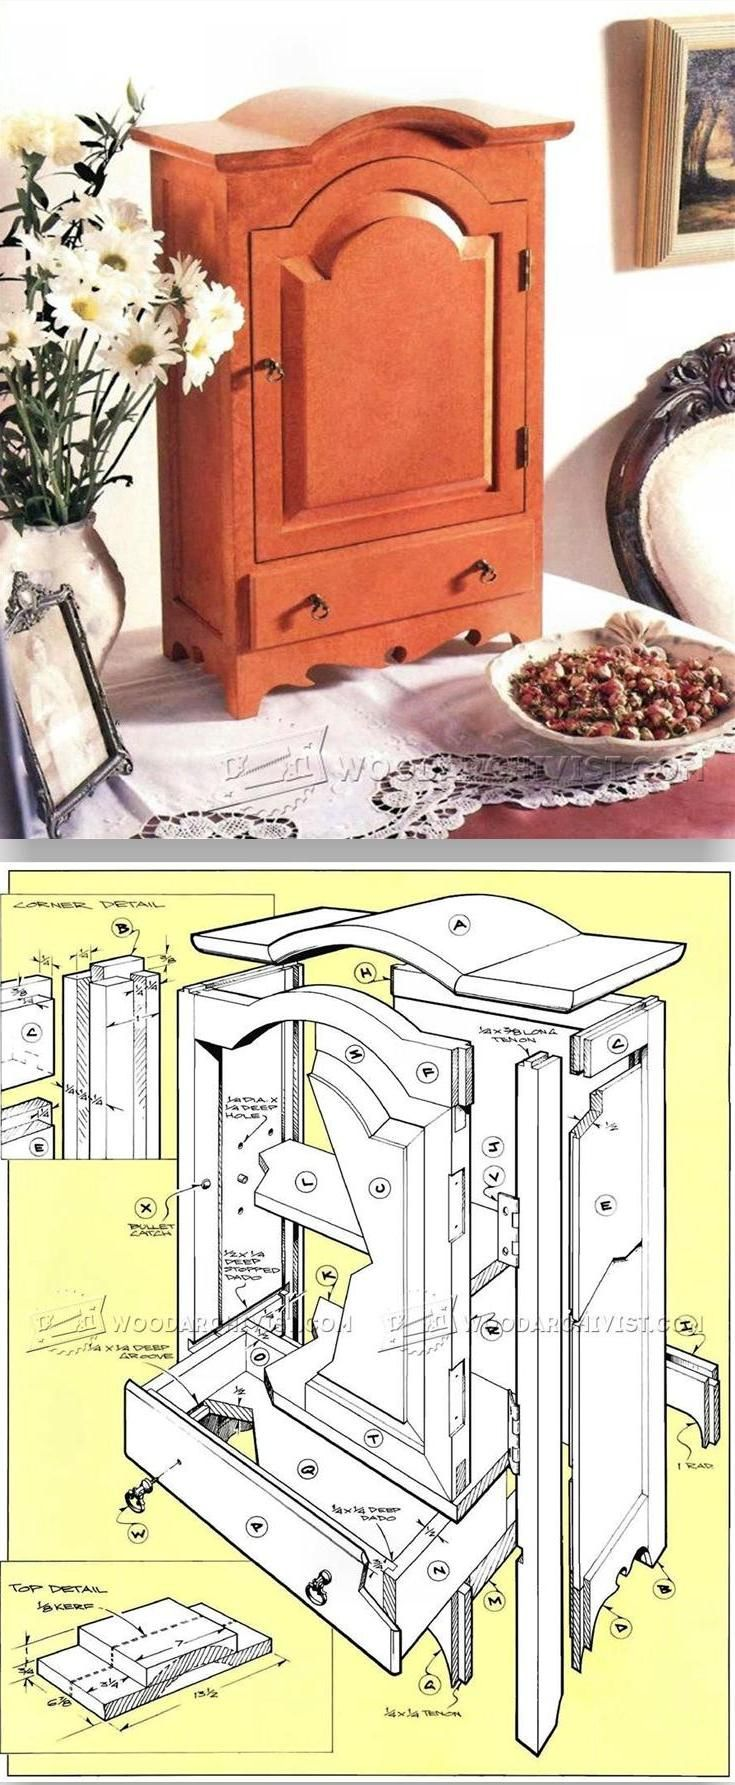 Table Top Jewelry Armoire Plans - Woodworking Plans and Projects | WoodArchivist.com